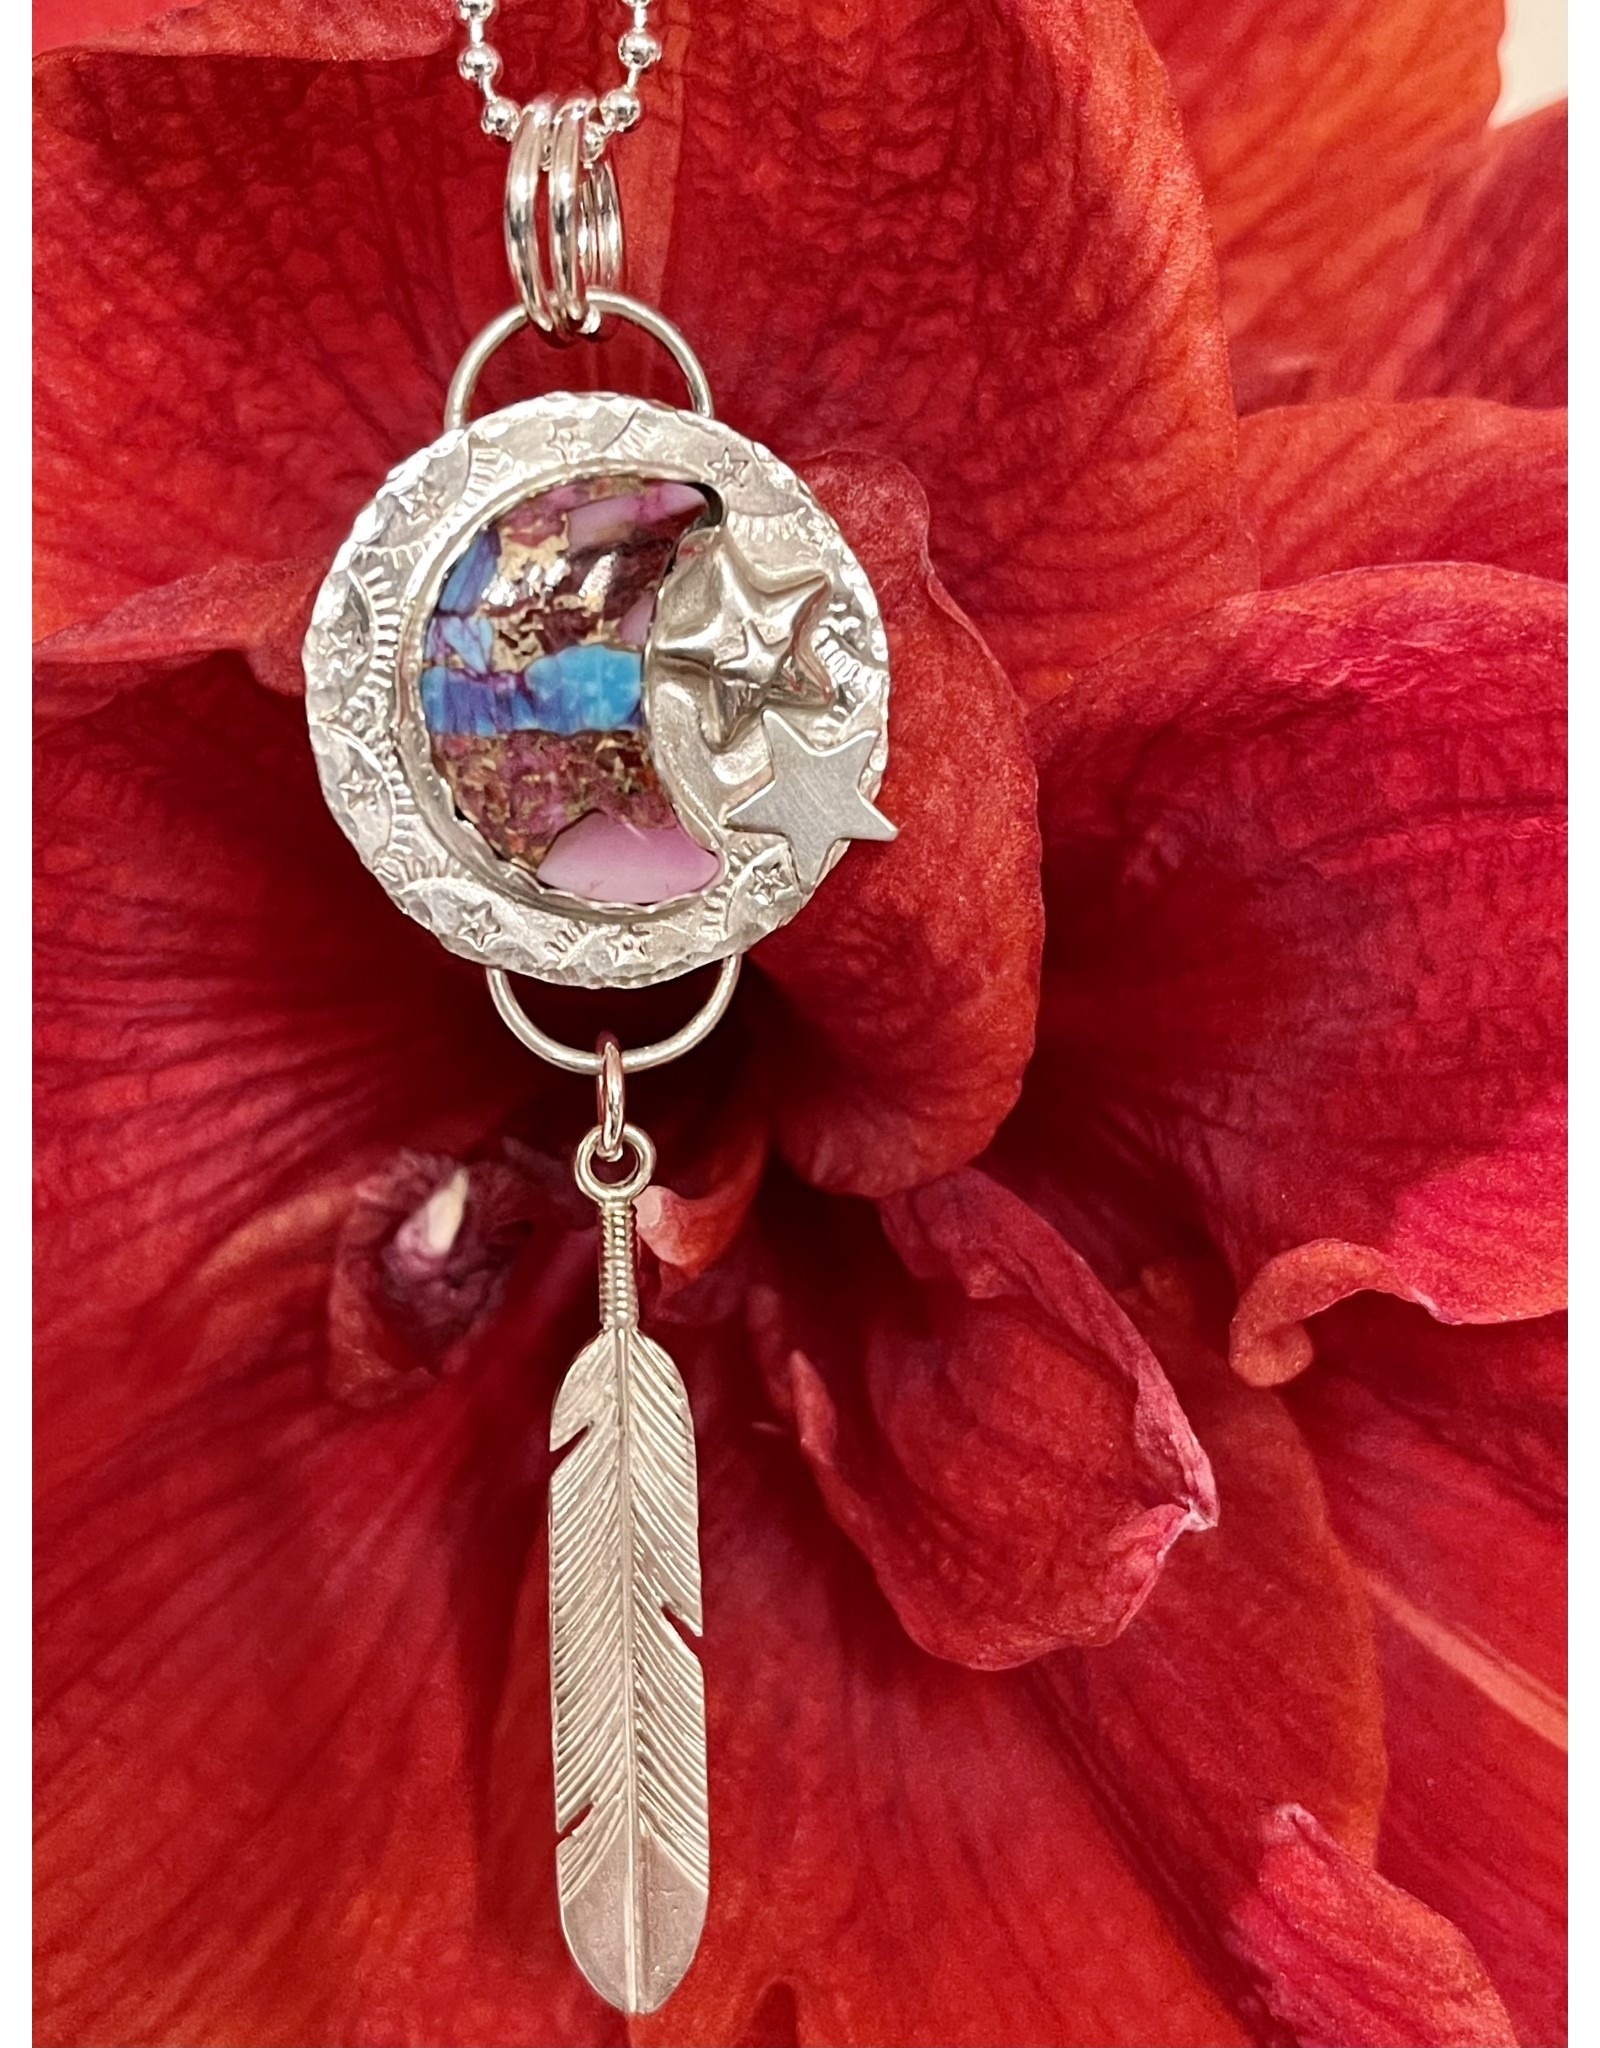 Annette Colby - Jeweler Purple Dahlia Moon Star Feather  Necklace - Annette Colby